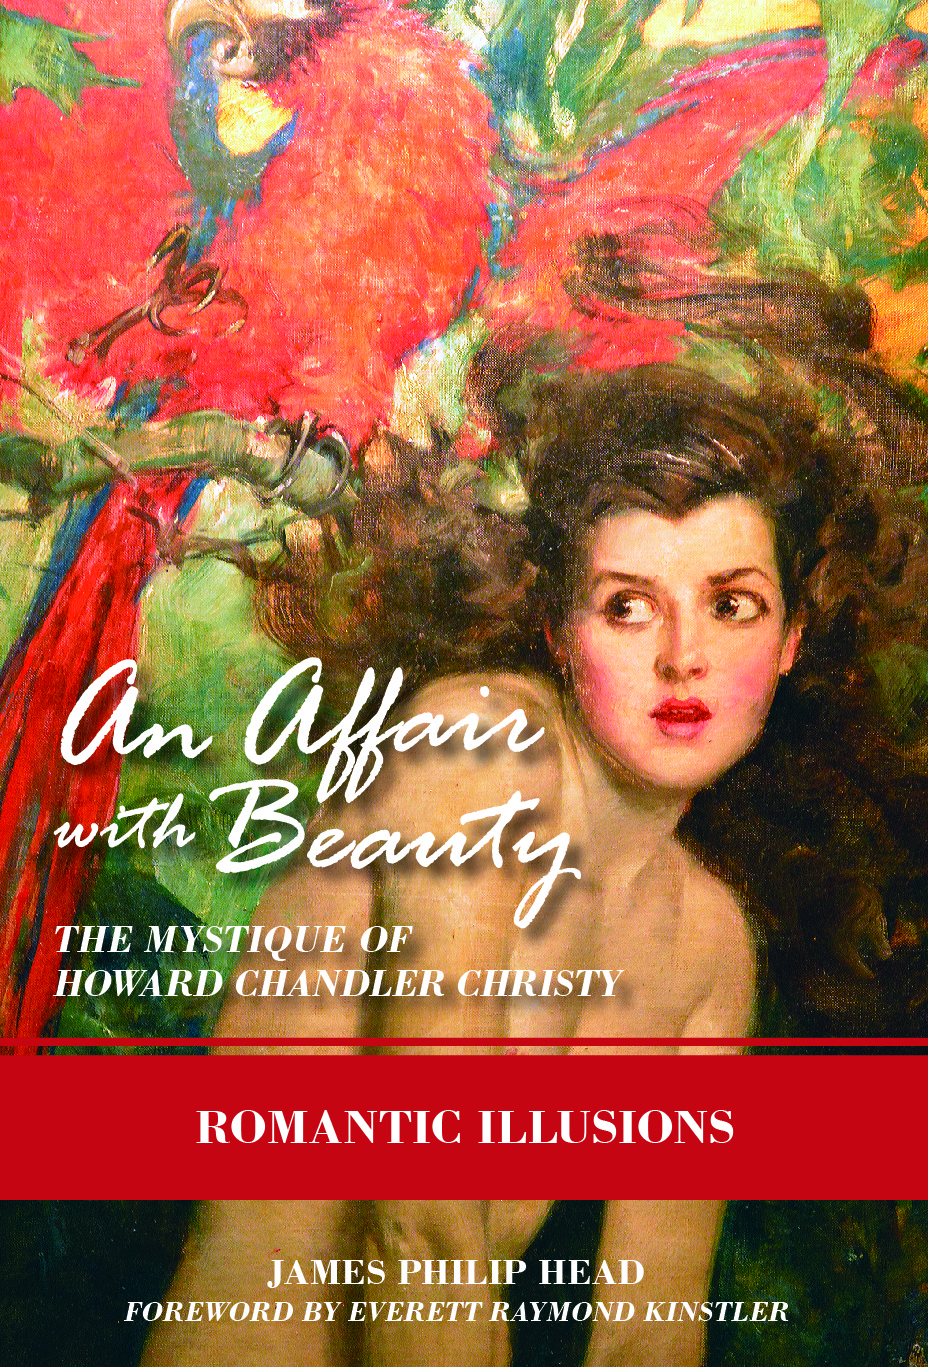 An Affair with Beauty — The Mystique of Howard Chandler Christy | Romantic Illusions